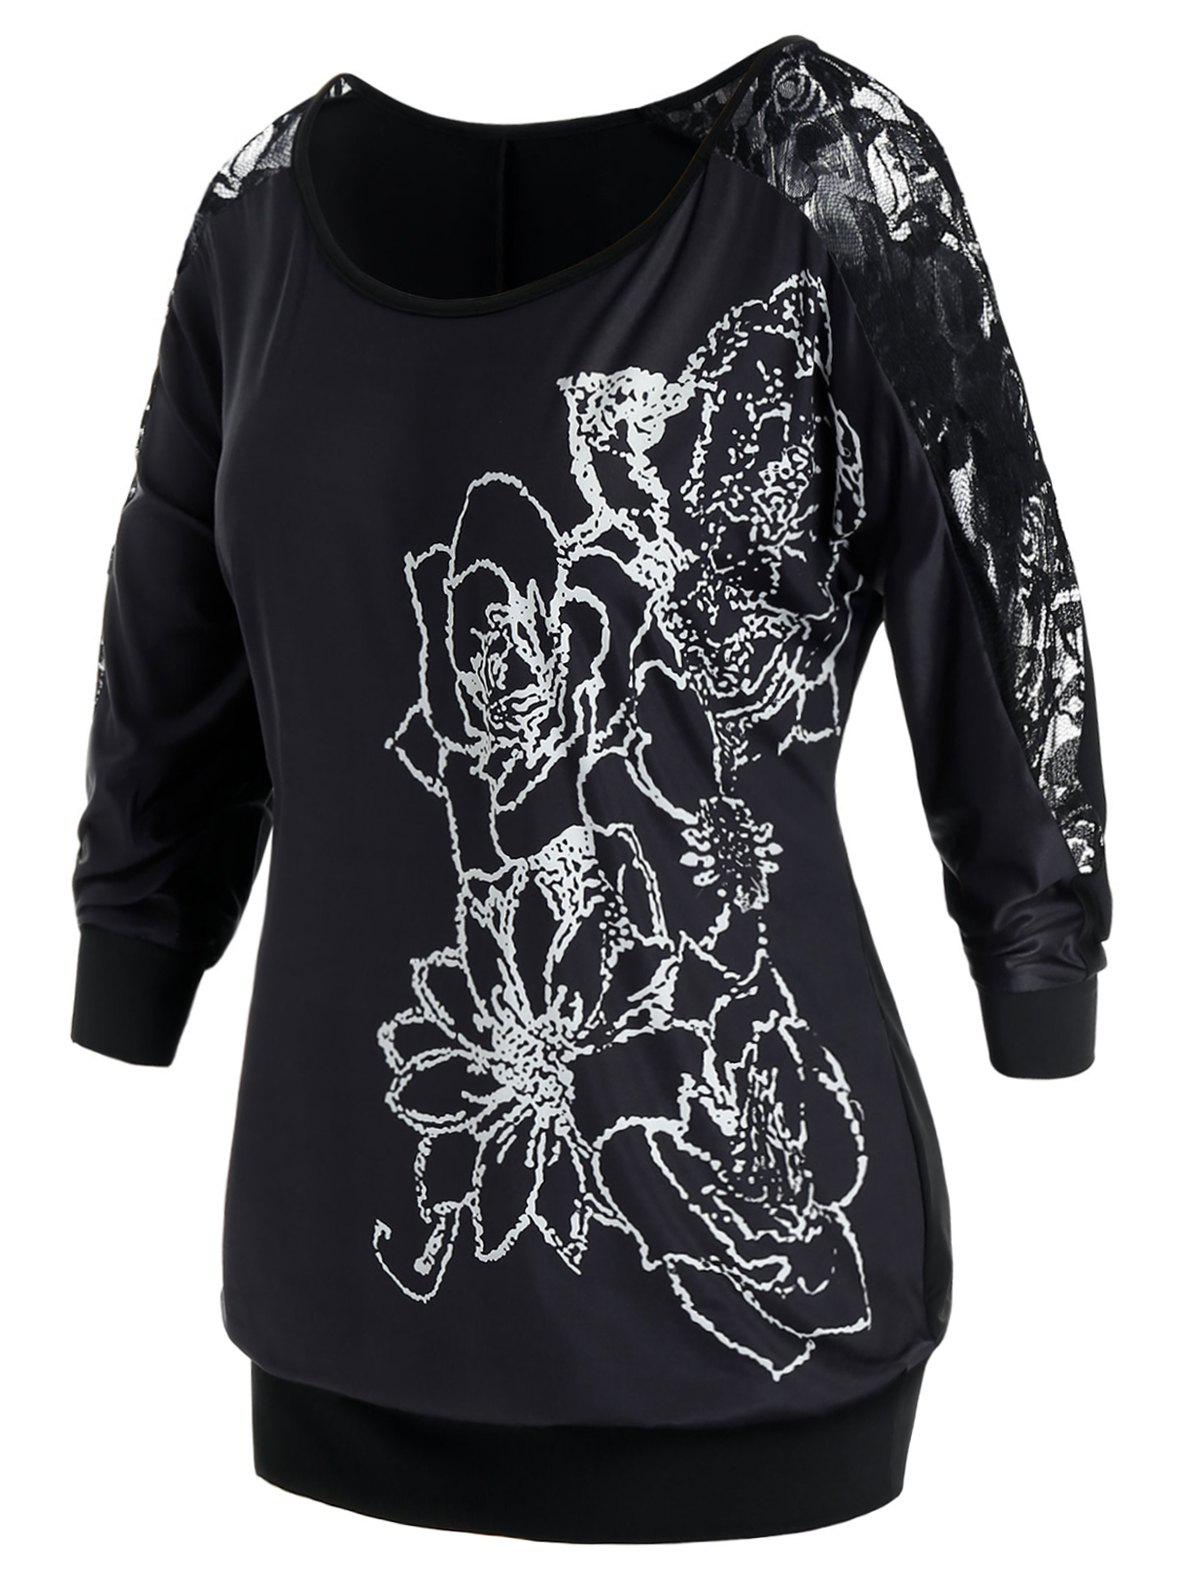 Plus Size Flower Print Lace Panel Sheer Blouson Tee - BLACK 2X